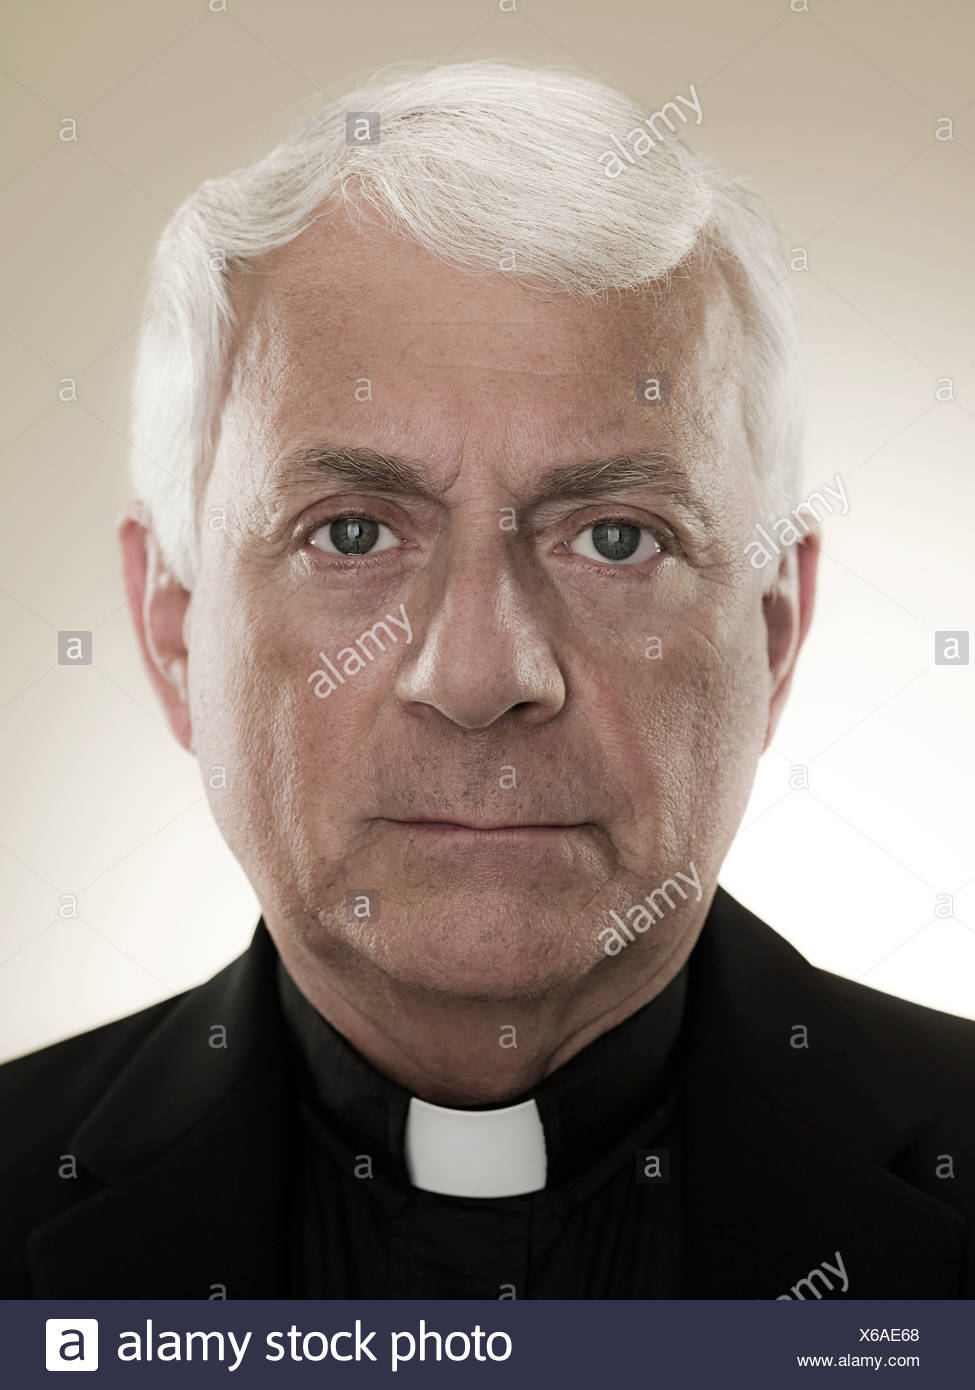 A headshot of a priest - Stock Image